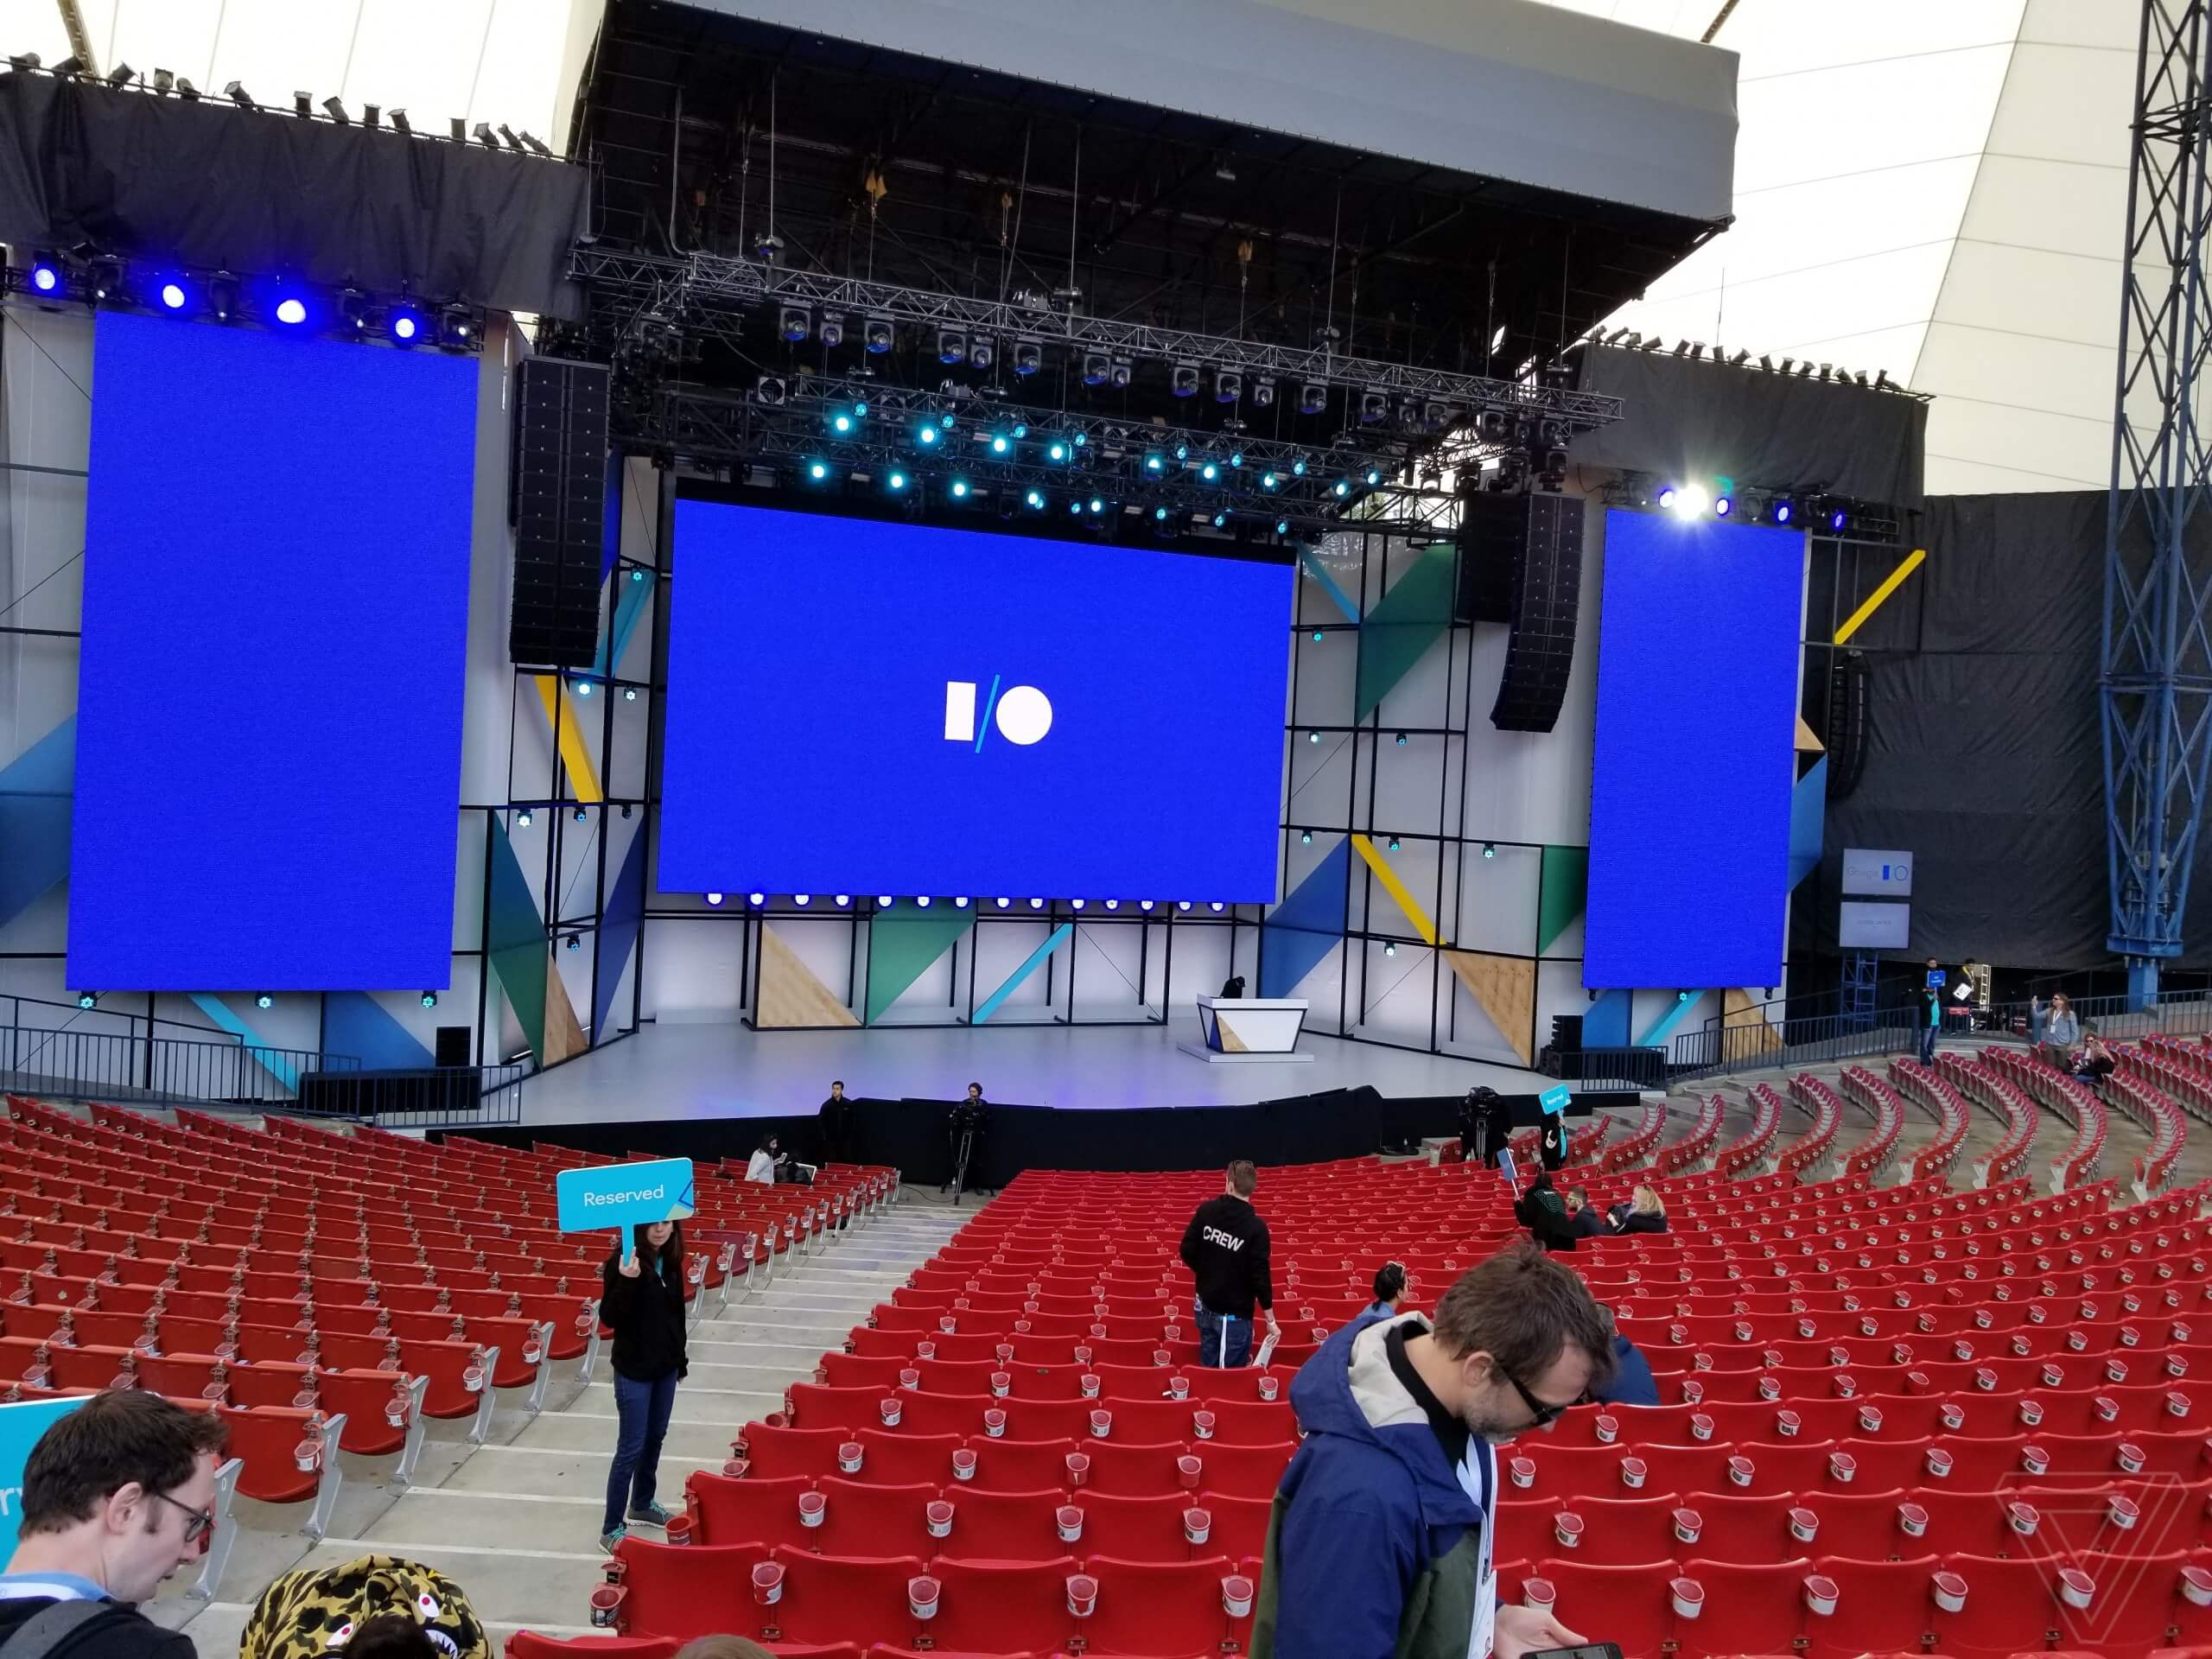 Google I/O 2019 Takes Place May 7-9 in Mountain View